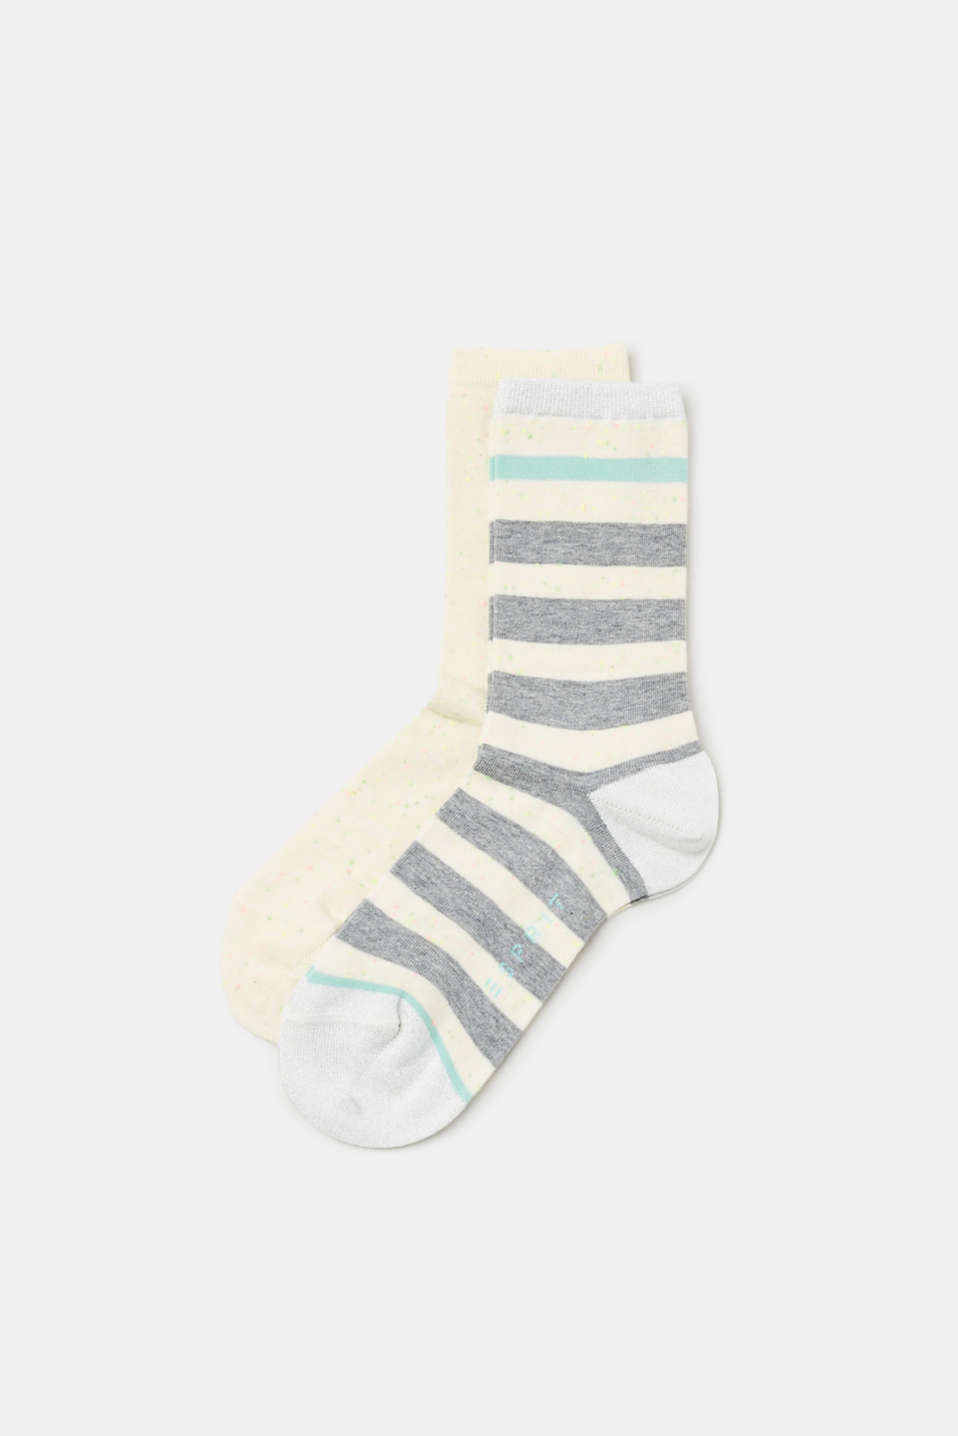 Esprit - Double pack of socks, colourful melange finish and glitter